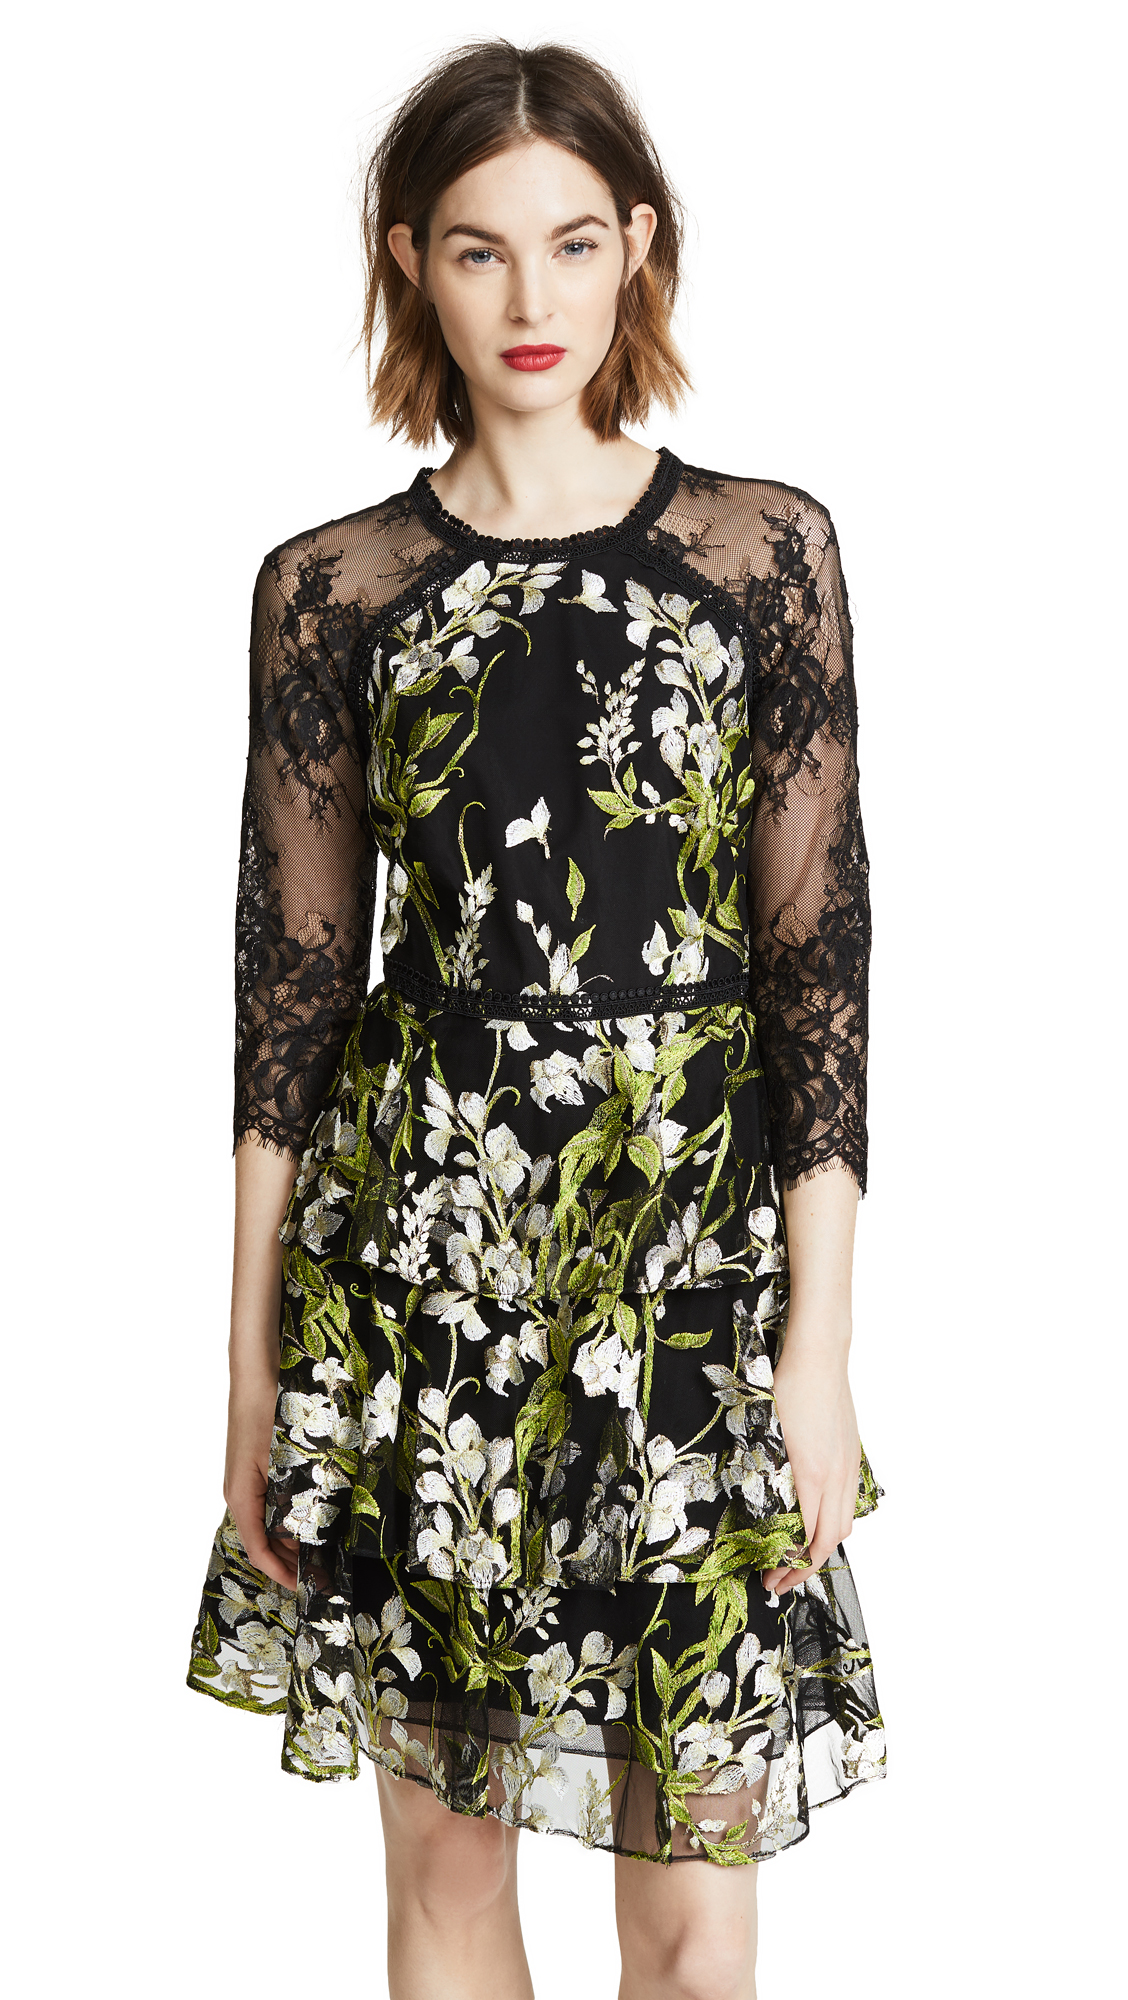 Marchesa Notte 3/4 Sleeve Embroidered Cocktail Dress